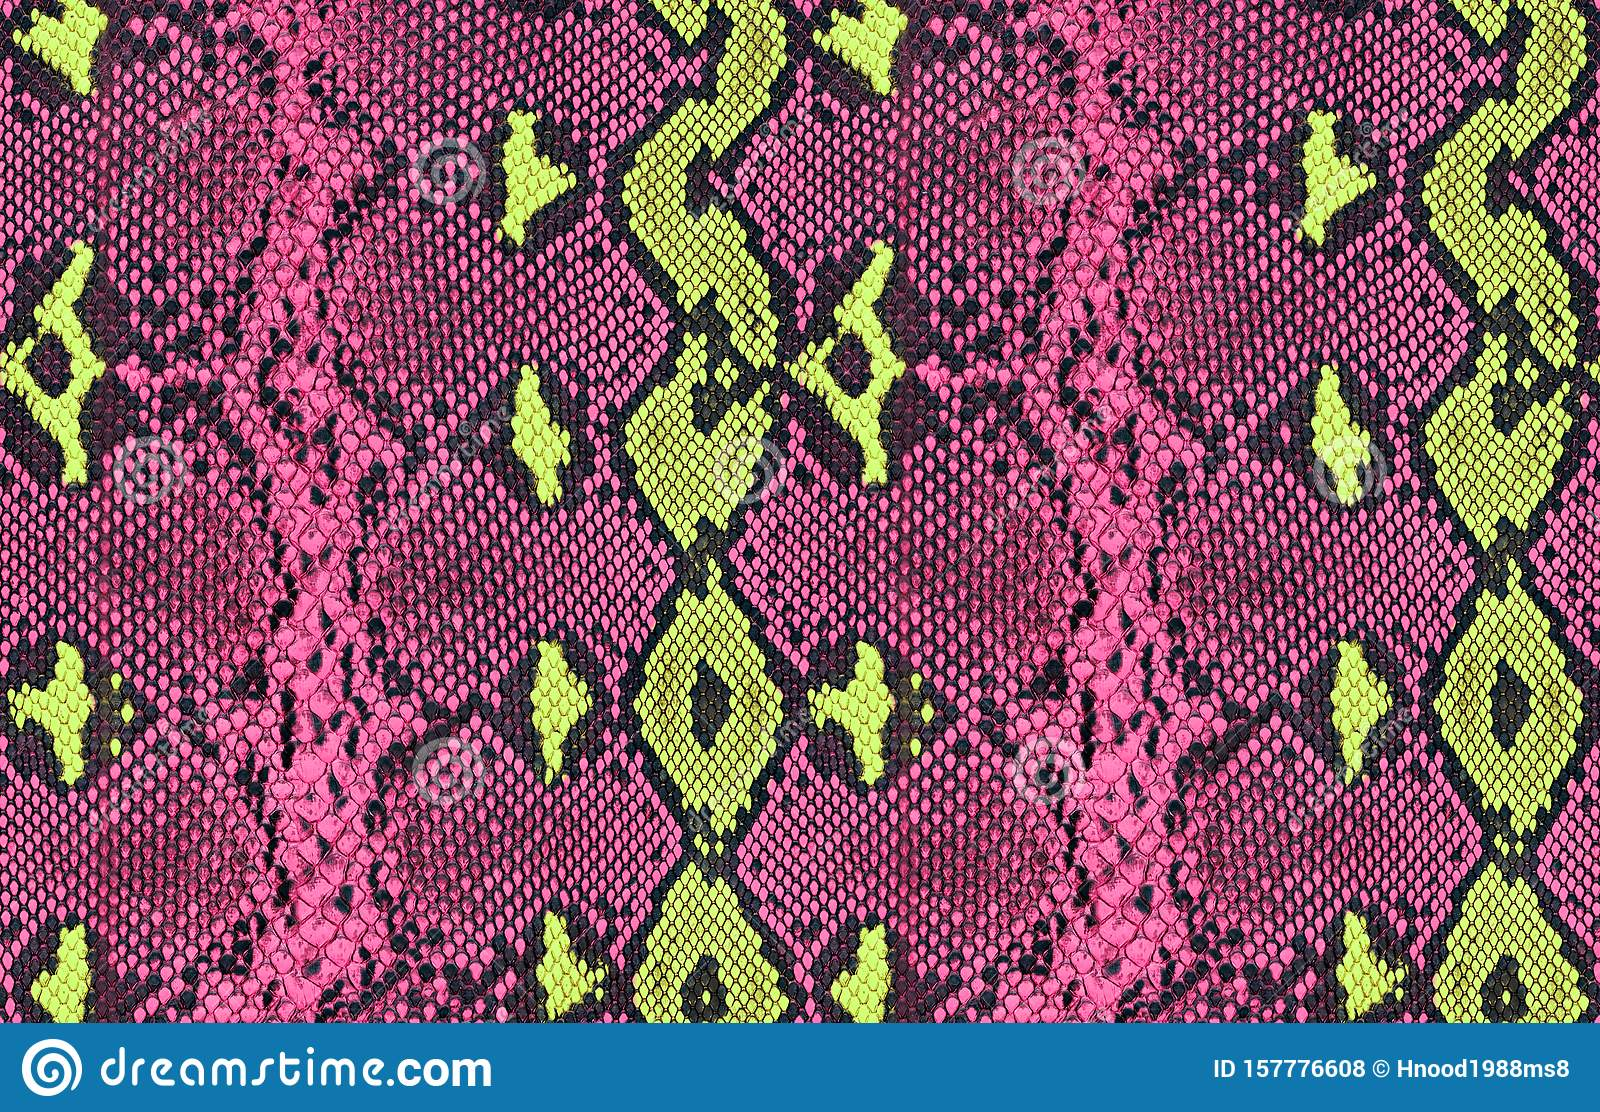 Snake skin pattern texture repeating seamles